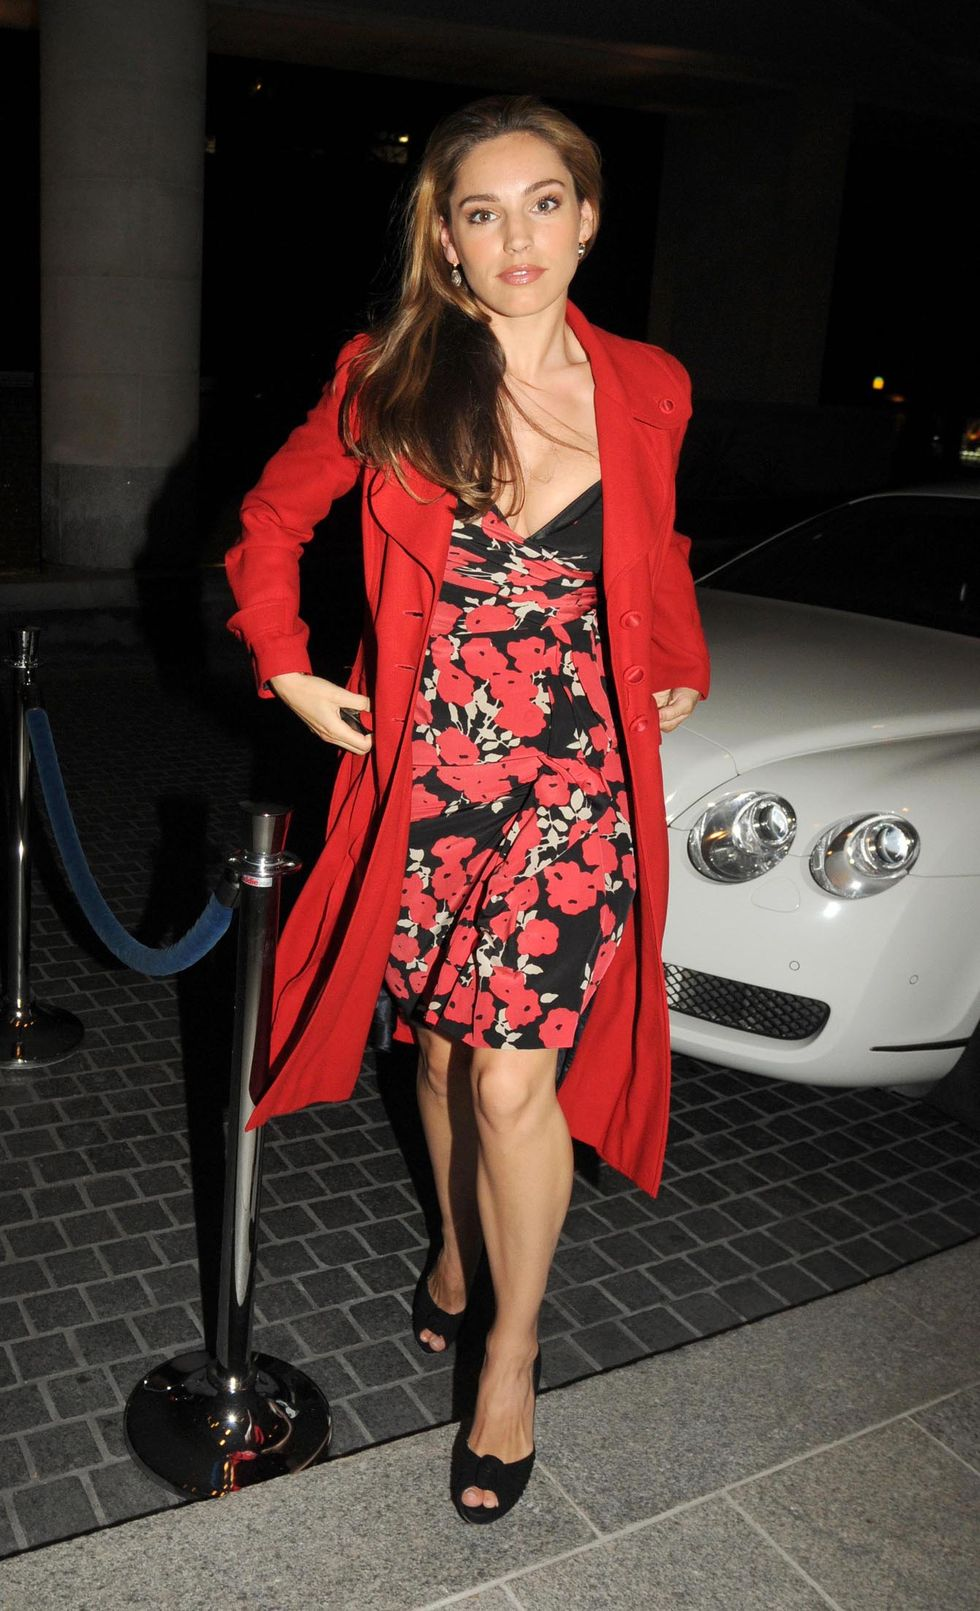 kelly-brook-cleavage-candids-at-zuma-restaurant-in-london-01